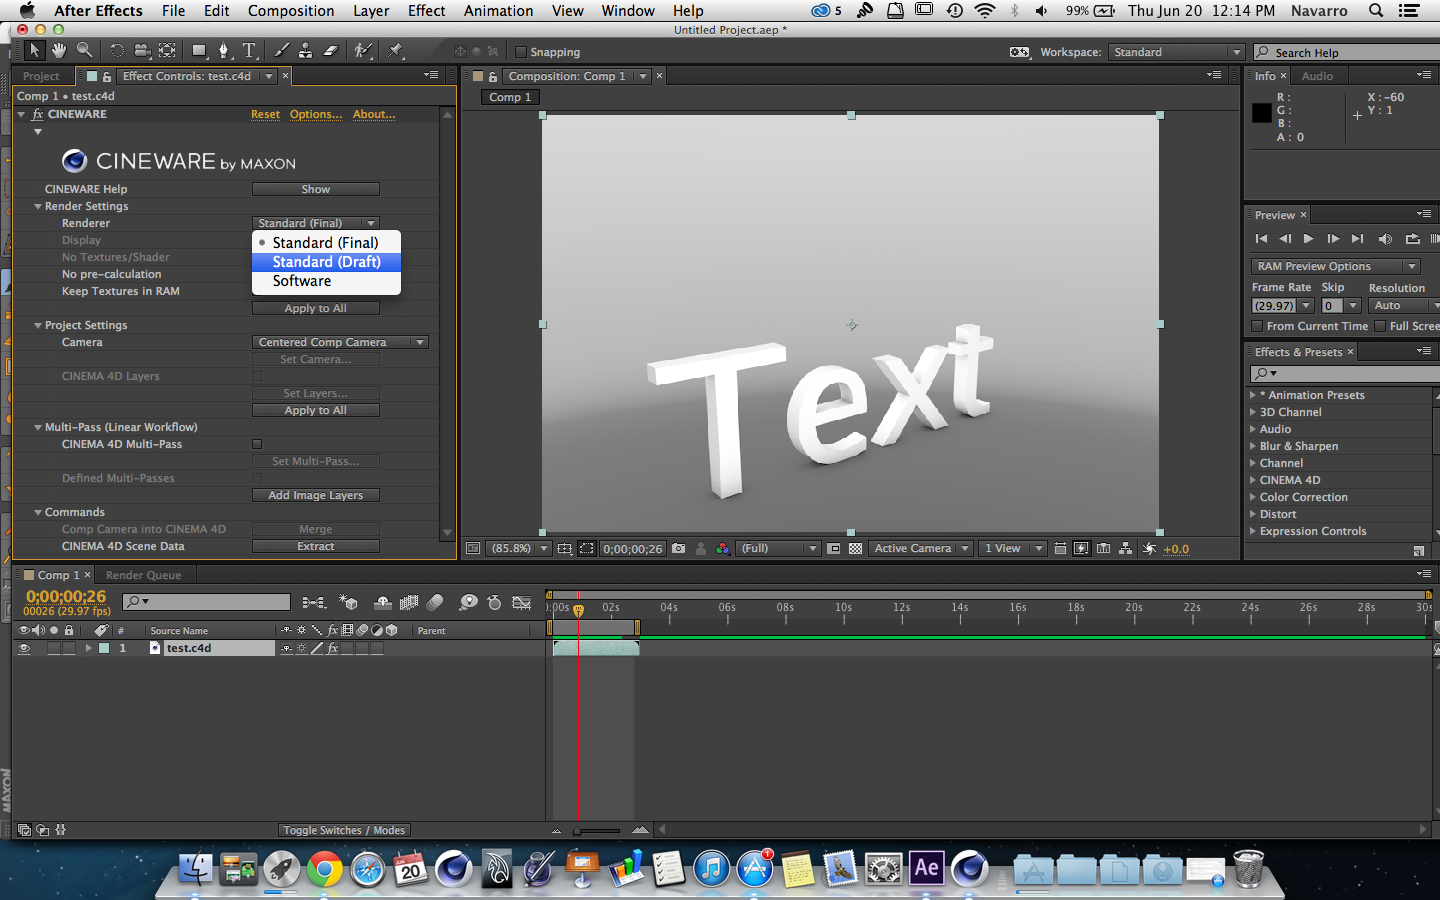 Download Adobe After Effects CC 12.2